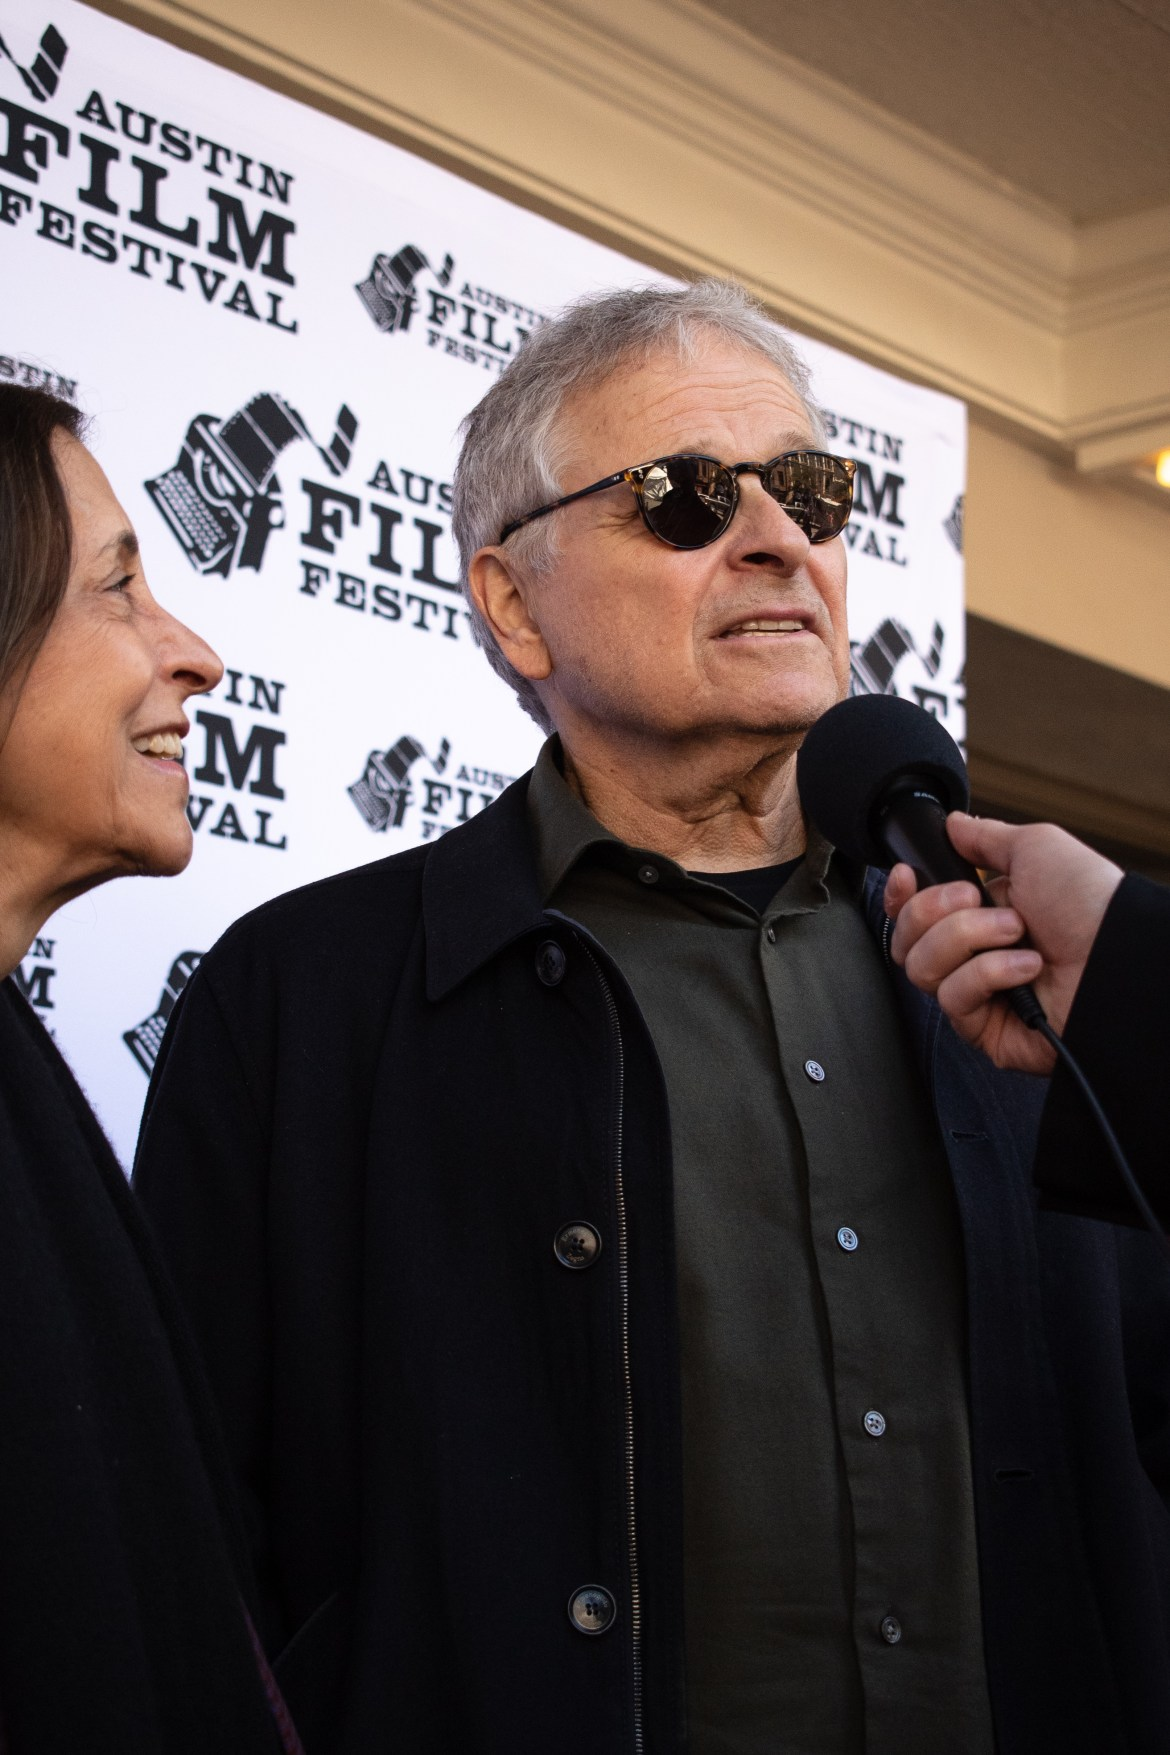 Man stand with a mic held to his mouth by someone off screen. A woman stands off to the left.